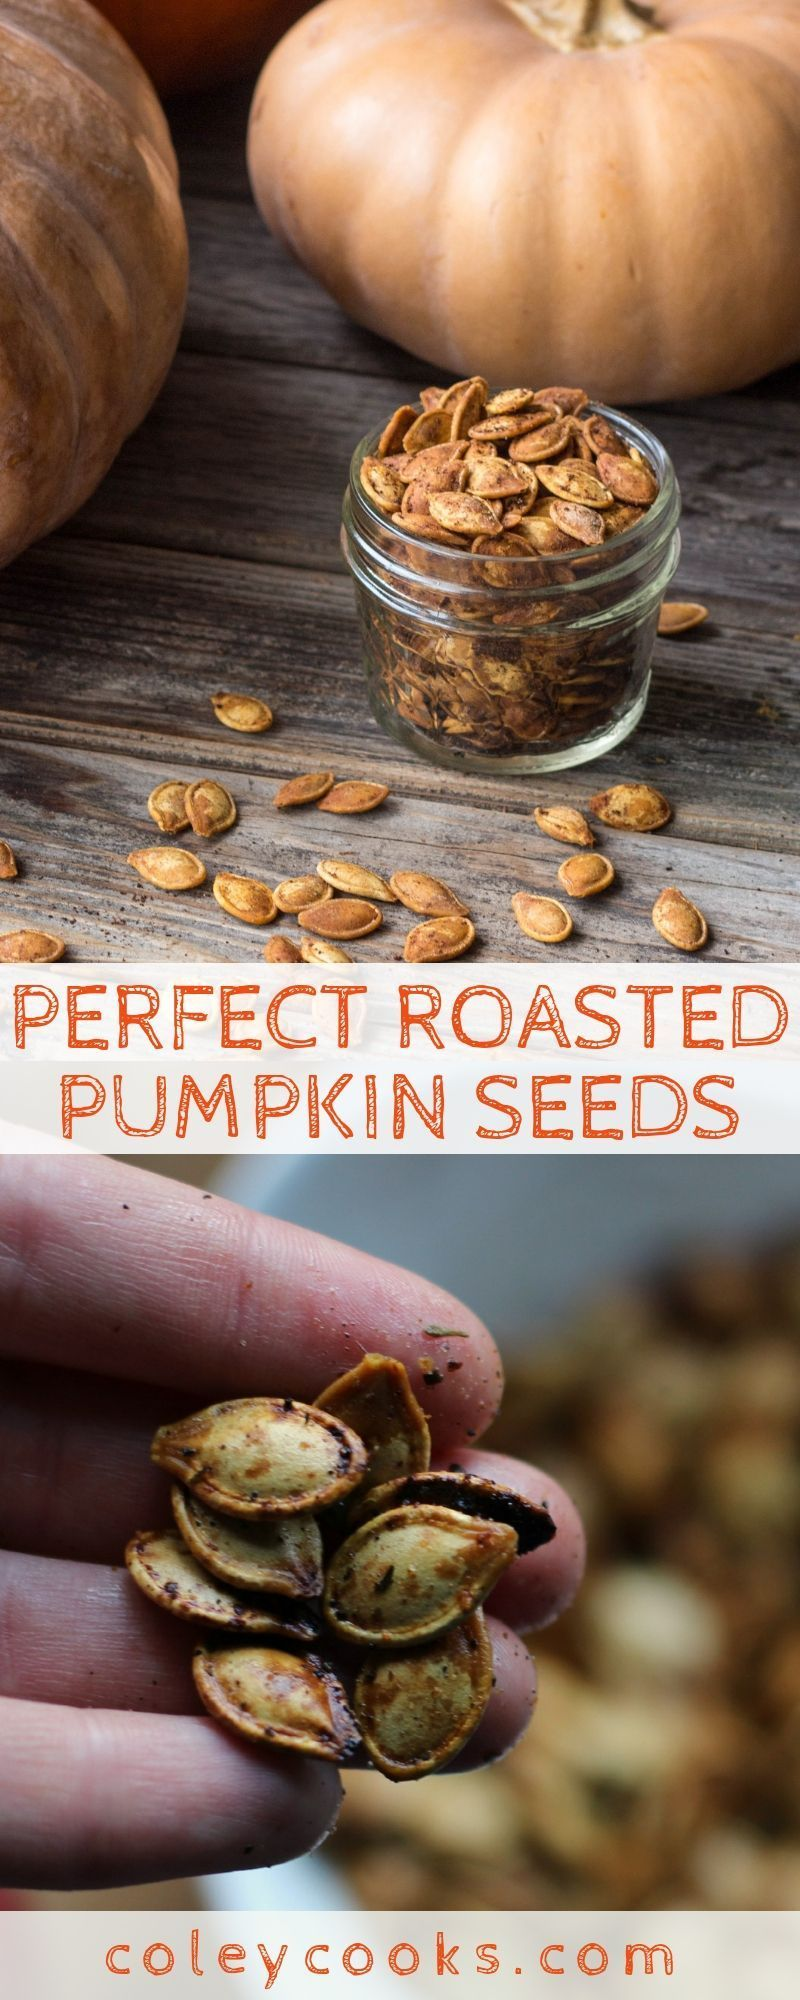 PERFECT ROASTED PUMPKIN SEEDS | This foolproof way for roasting pumpkin seeds produces the crunchiest, best pumpkin seeds ever! #pumpkin #pumpkinseeds #pumpkincarving #recipe #method #technique #blanching #seeds | ColeyCooks.com #roastedpumpkinseedsrecipe PERFECT ROASTED PUMPKIN SEEDS | This foolproof way for roasting pumpkin seeds produces the crunchiest, best pumpkin seeds ever! #pumpkin #pumpkinseeds #pumpkincarving #recipe #method #technique #blanching #seeds | ColeyCooks.com #roastedpumpkin #roastedpumpkinseeds